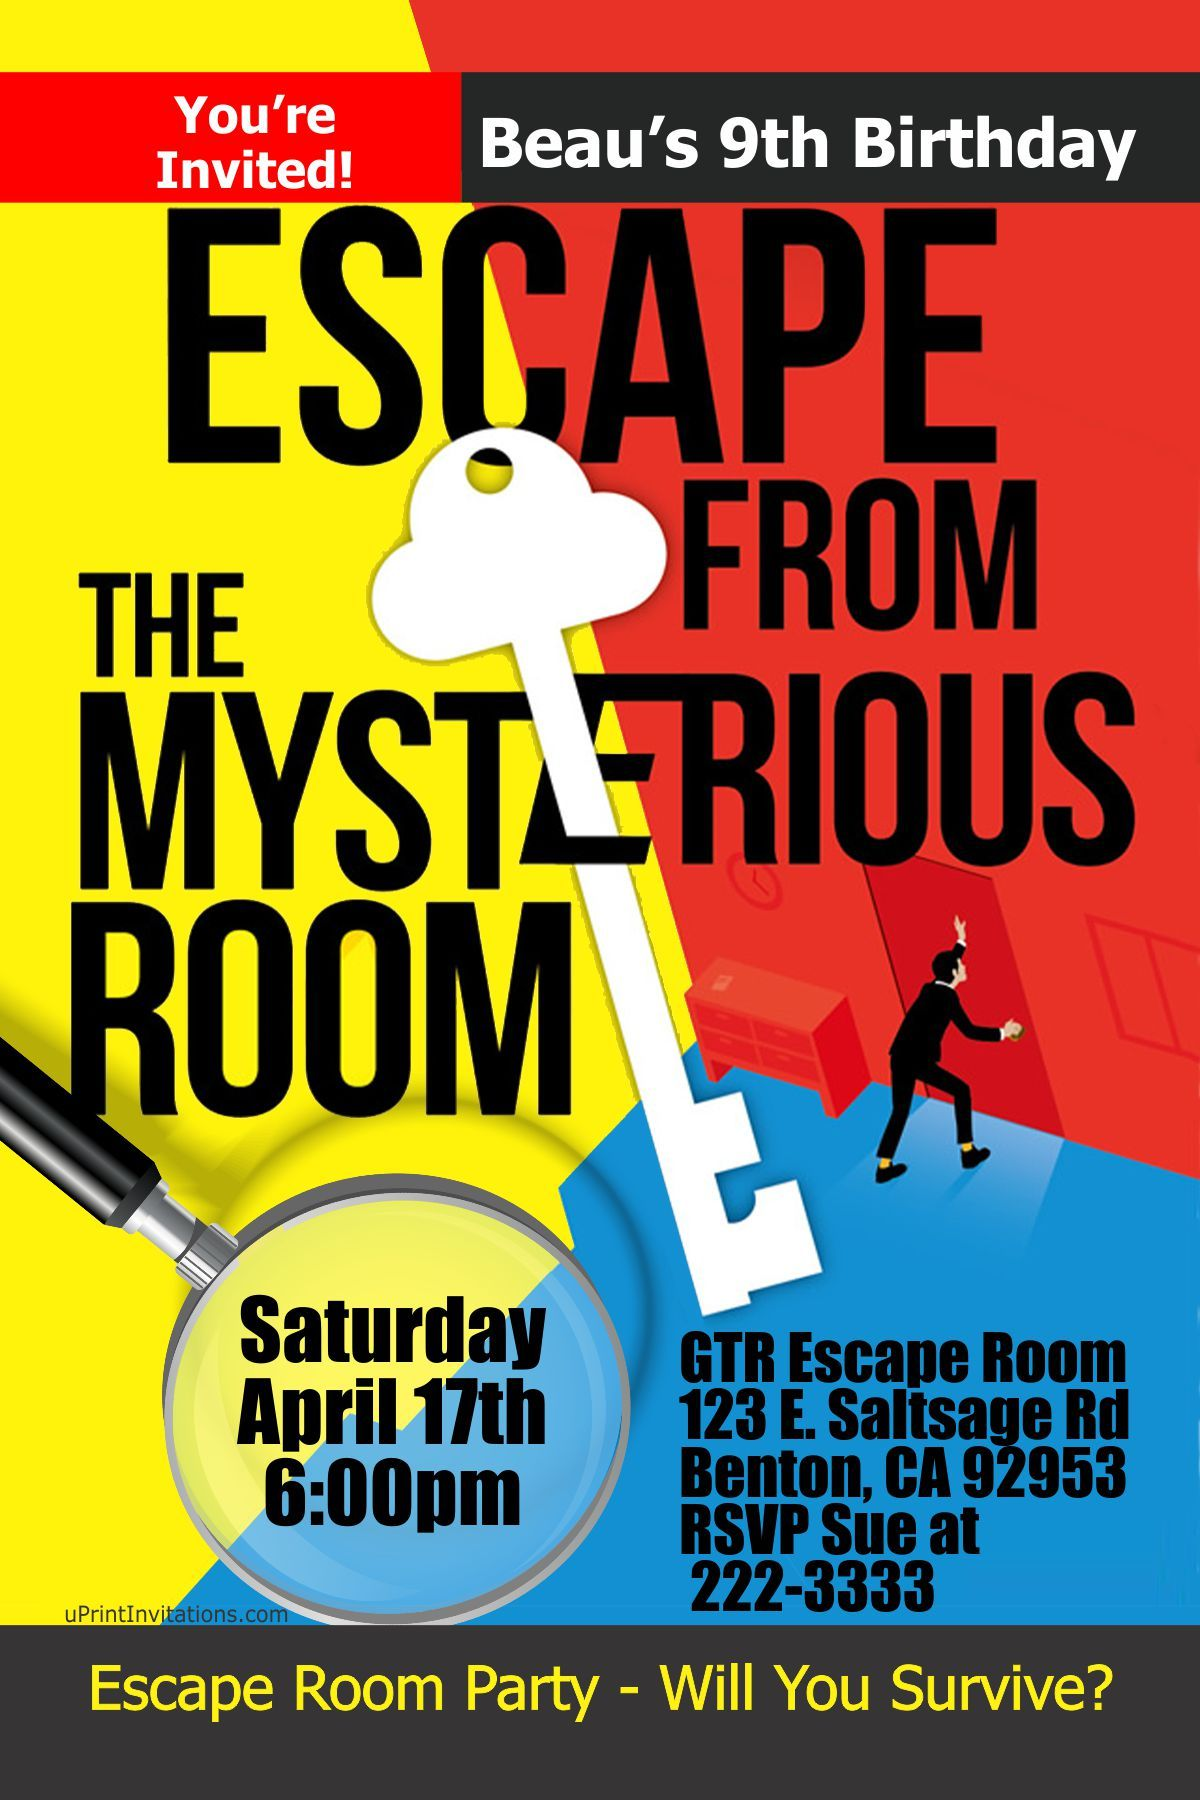 Escape Room Party Birthday Invitations- Digital Download - Get these ...